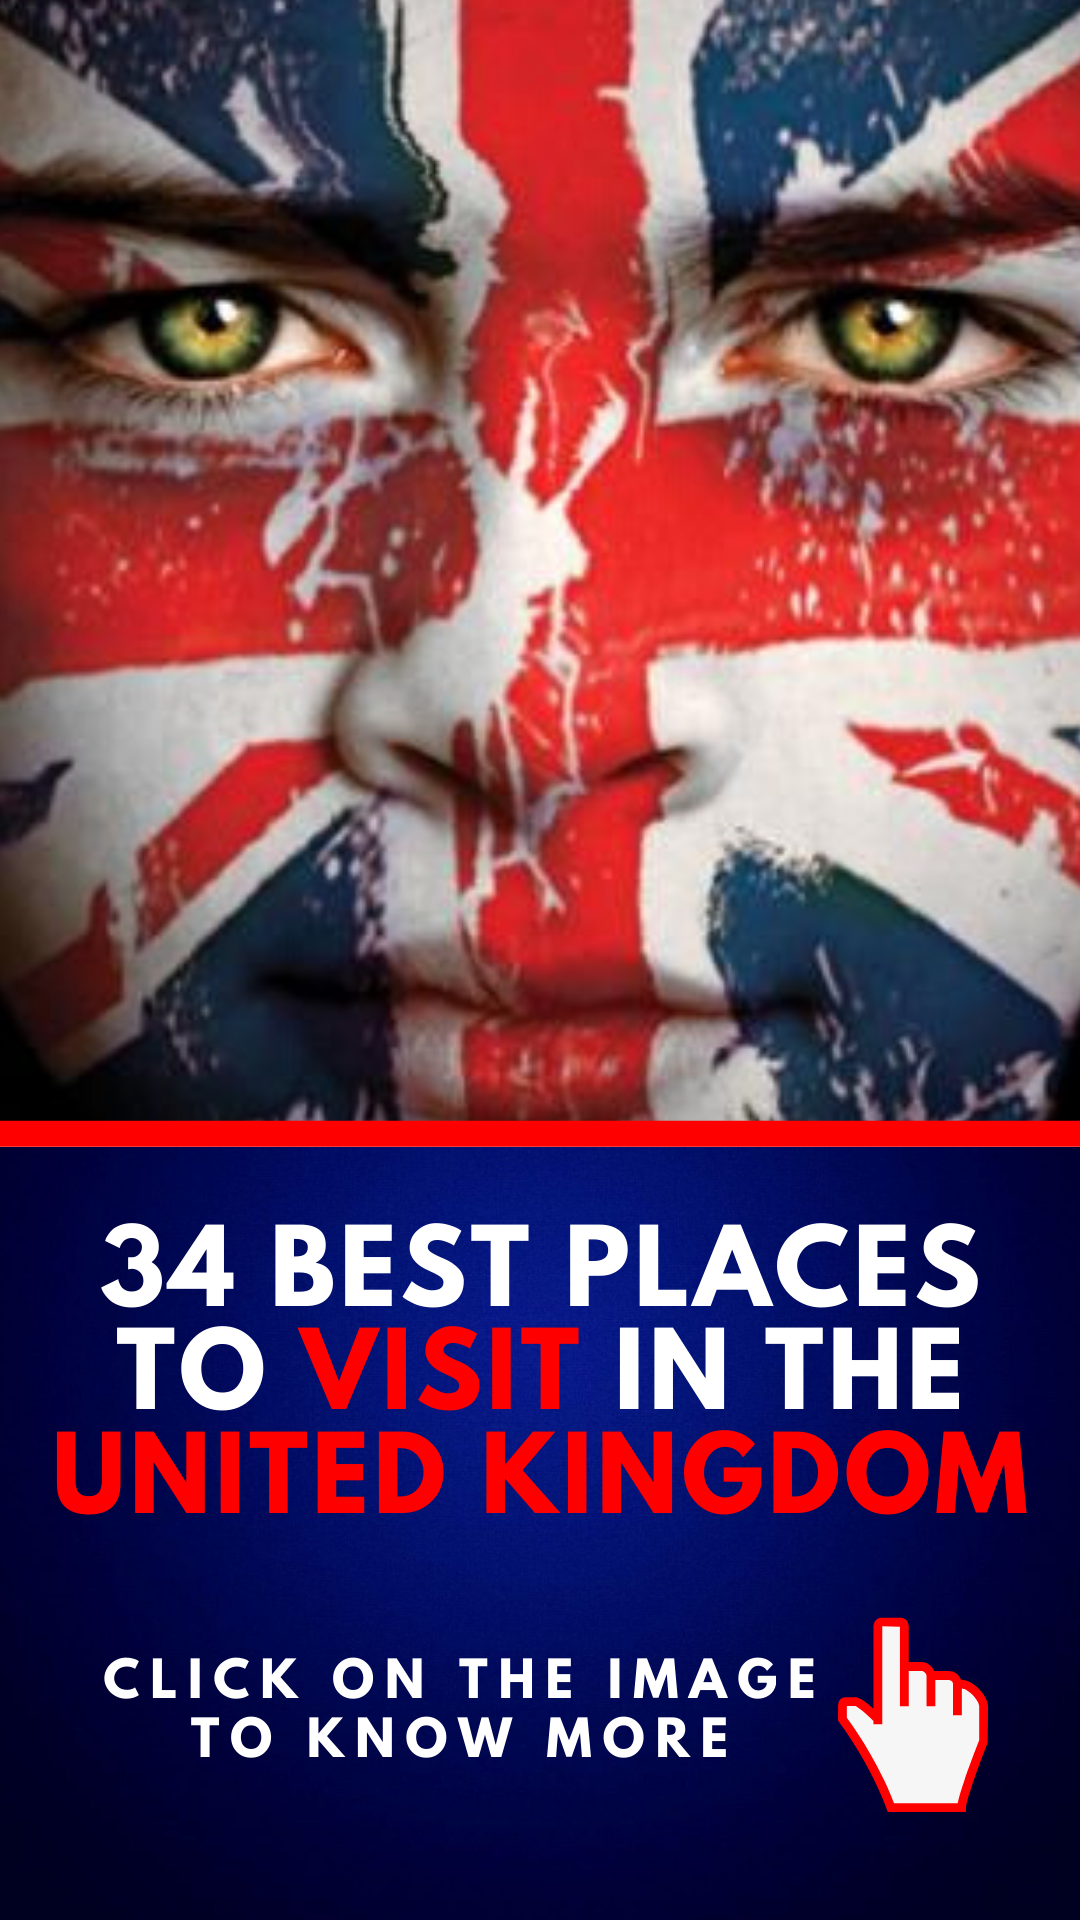 Most Beautiful Manchester United Wallpapers Aesthetic The most beautiful places in UK voted by travellers. Click on the image to find out   #UnitedKingdom #England #Landon #Photography #Manchester #Wales #Ireland #Travel #Map #GreatBritain #Wallpaper #Food#Culture #Europe #Aesthetic #Houses #Castle #Mountains #Save #nightlife